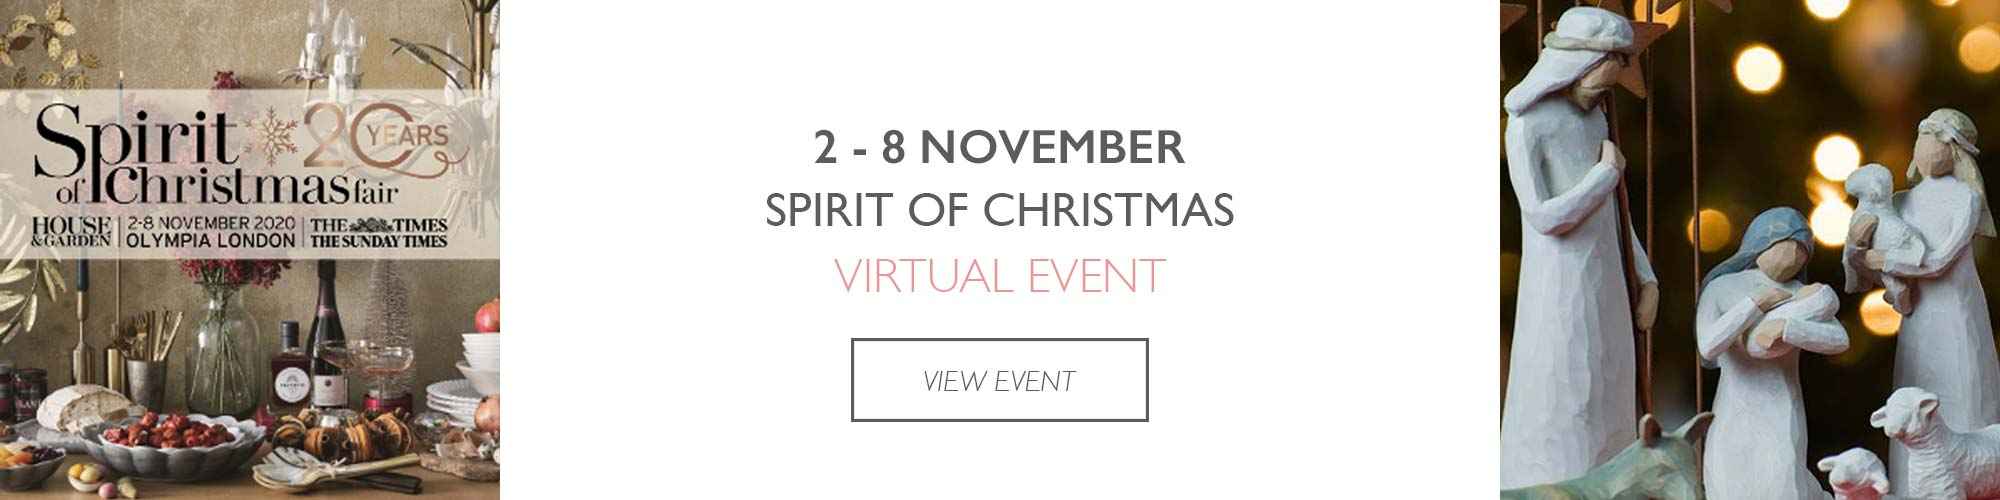 spirit of christmas virtual event dates